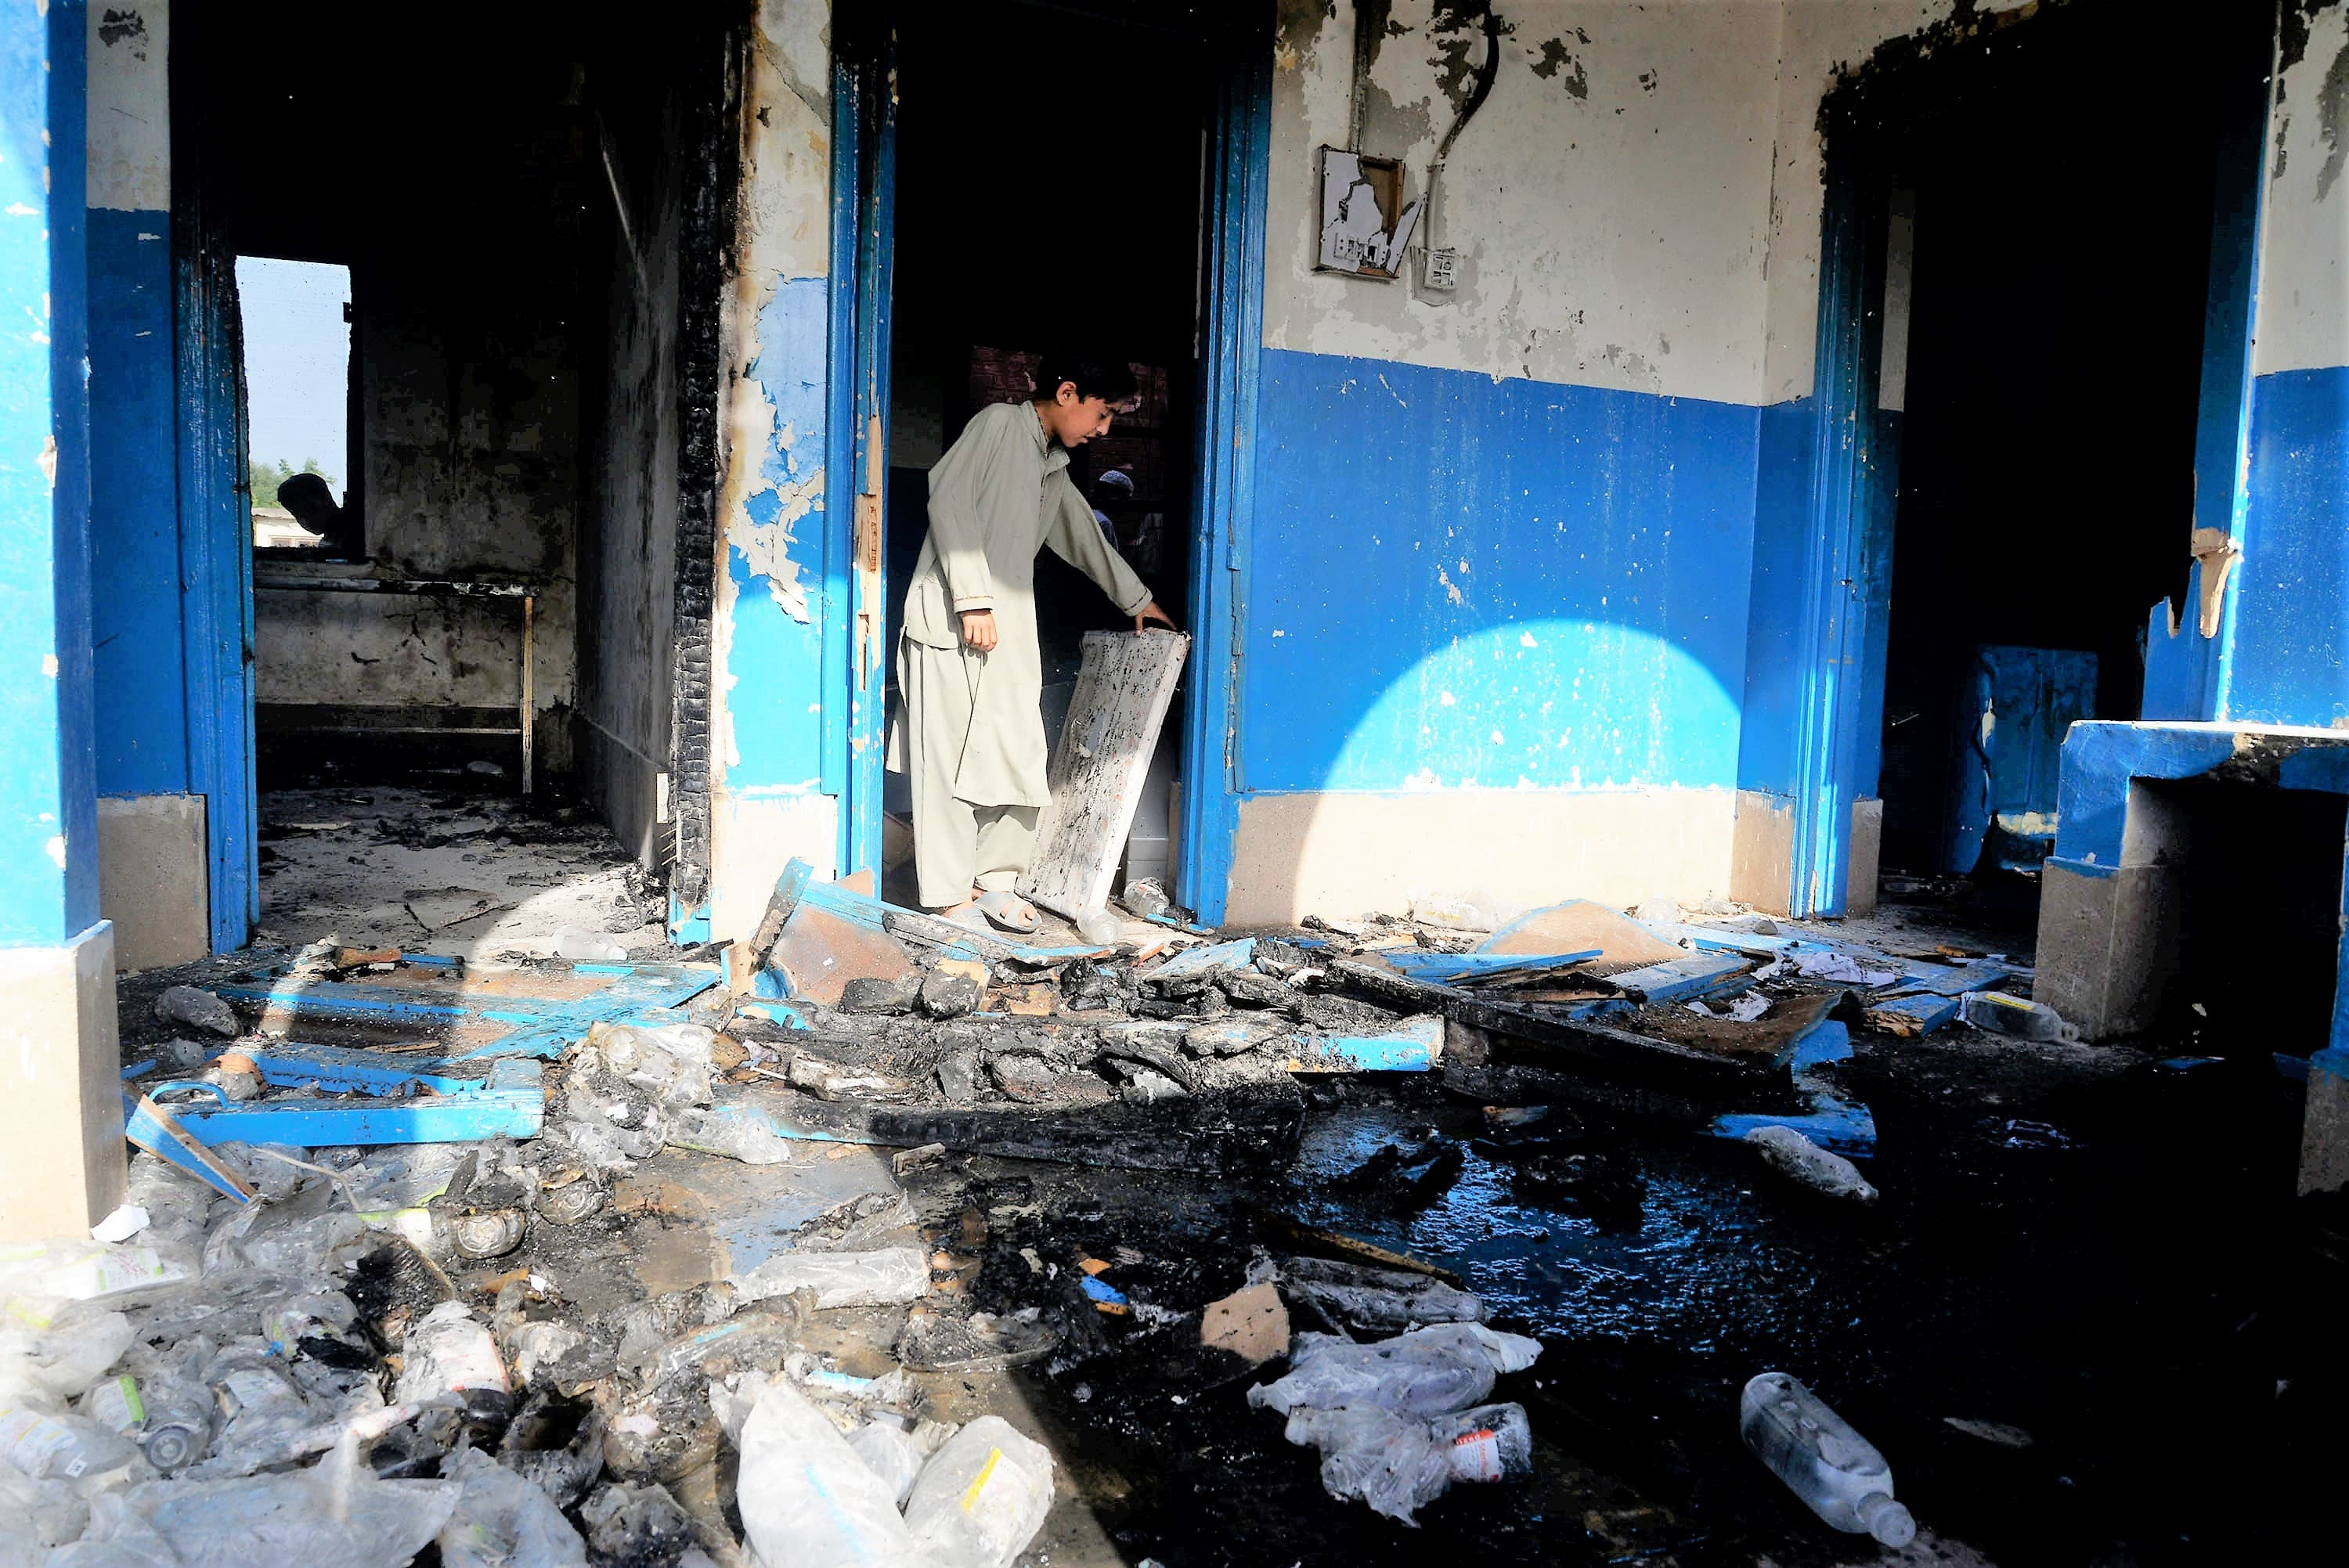 People are suspicious of polio vaccines around the country. A small hospital in Mashokhel, Peshawar was burnt in April in response to rumours about polio vaccines. | White Star